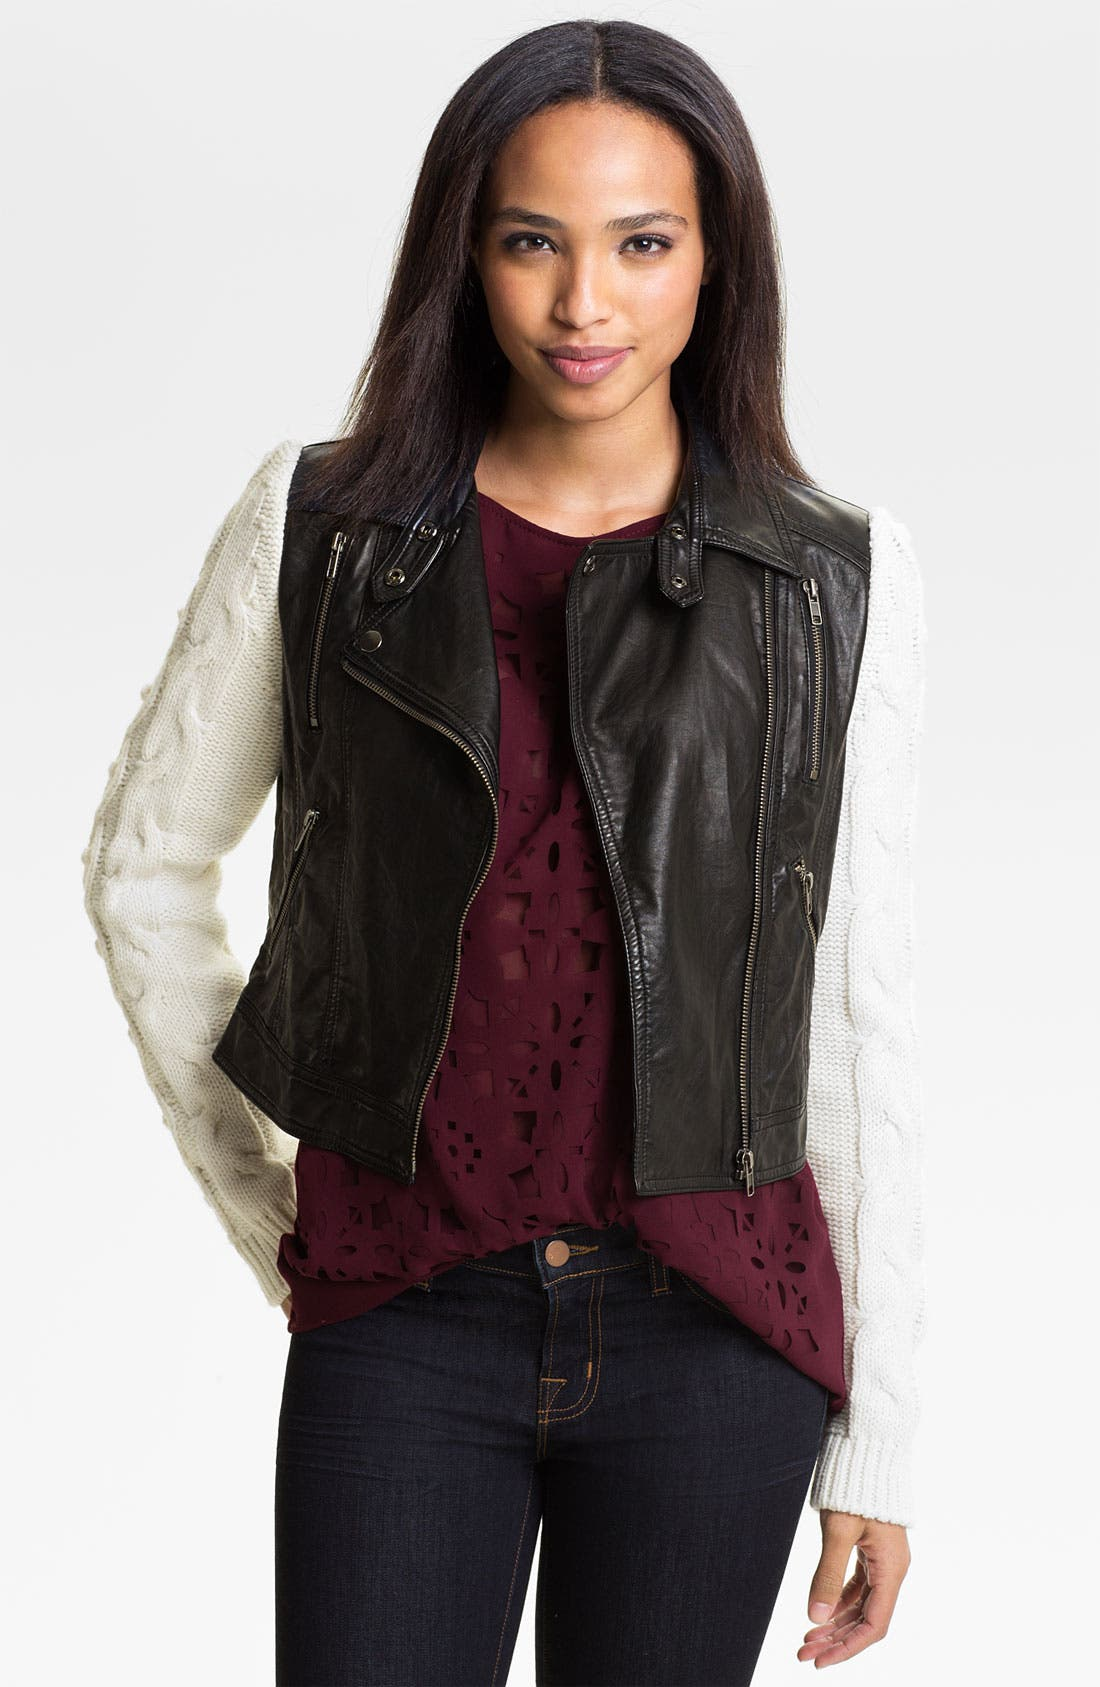 Main Image - Two by Vince Camuto Faux Leather Jacket with Knit Sleeves